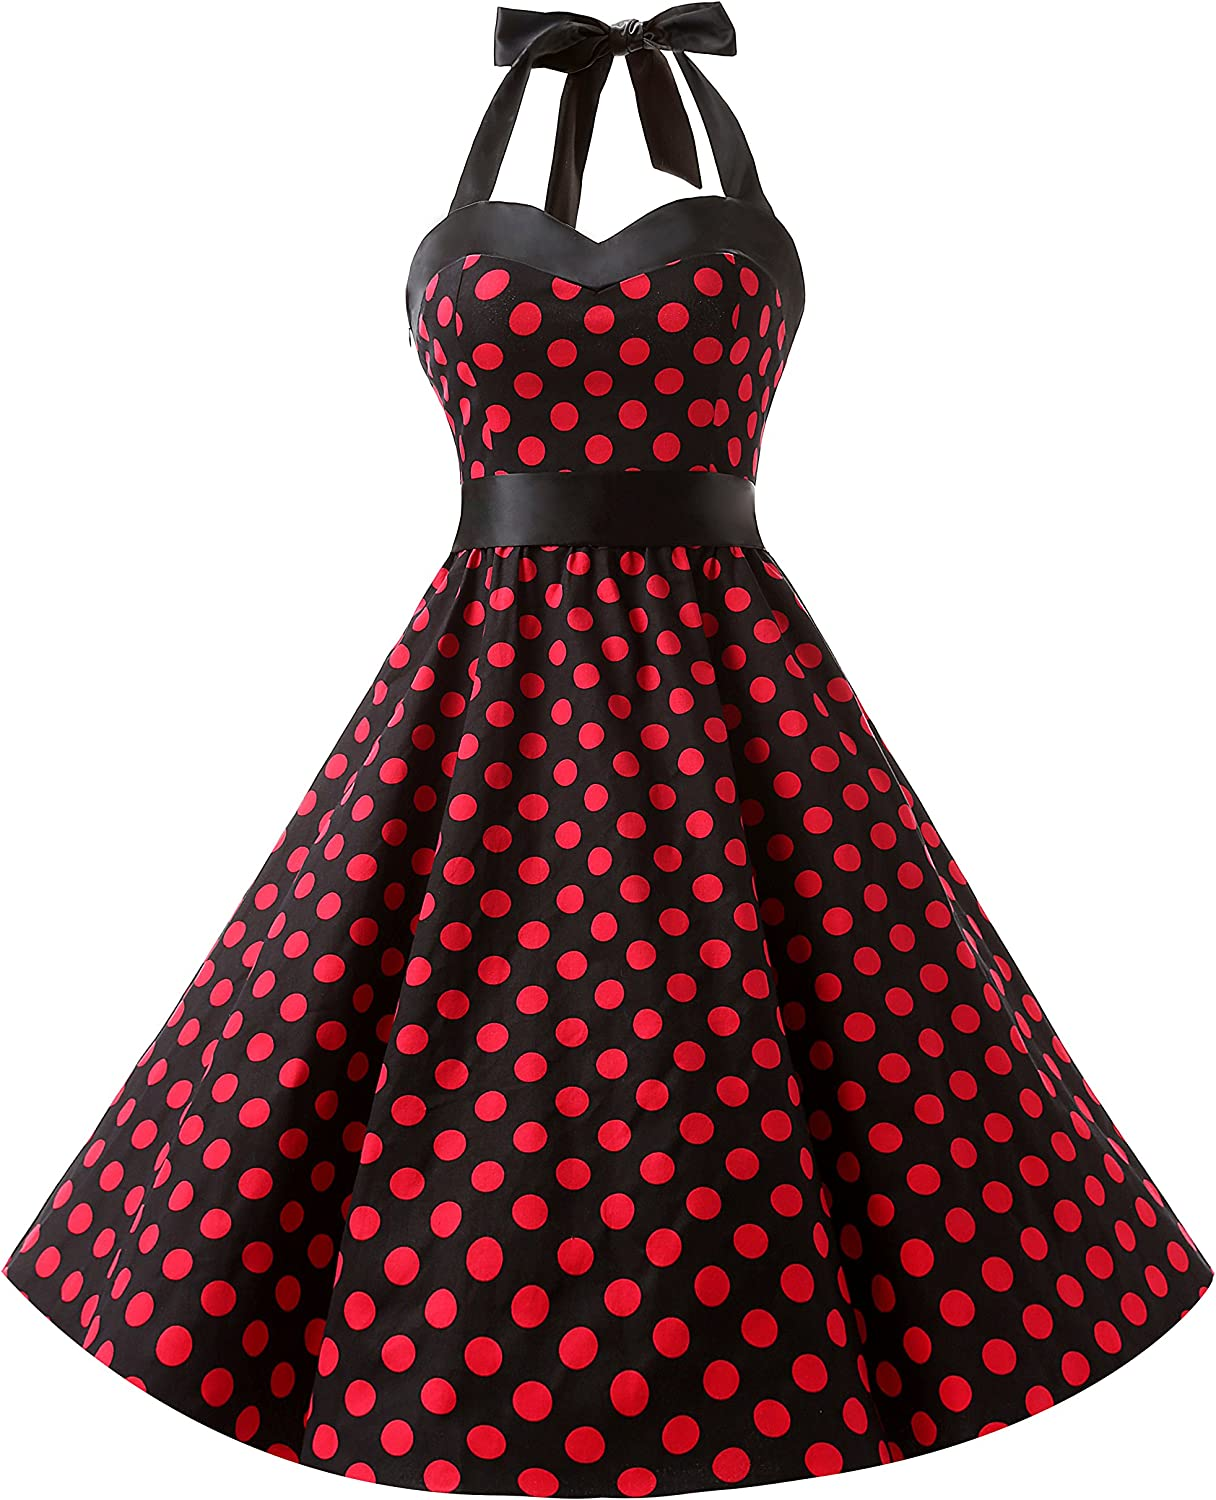 TALLA XS. Dresstells® Halter 50s Rockabilly Polka Dots Audrey Dress Retro Cocktail Dress Black Red Dot XS